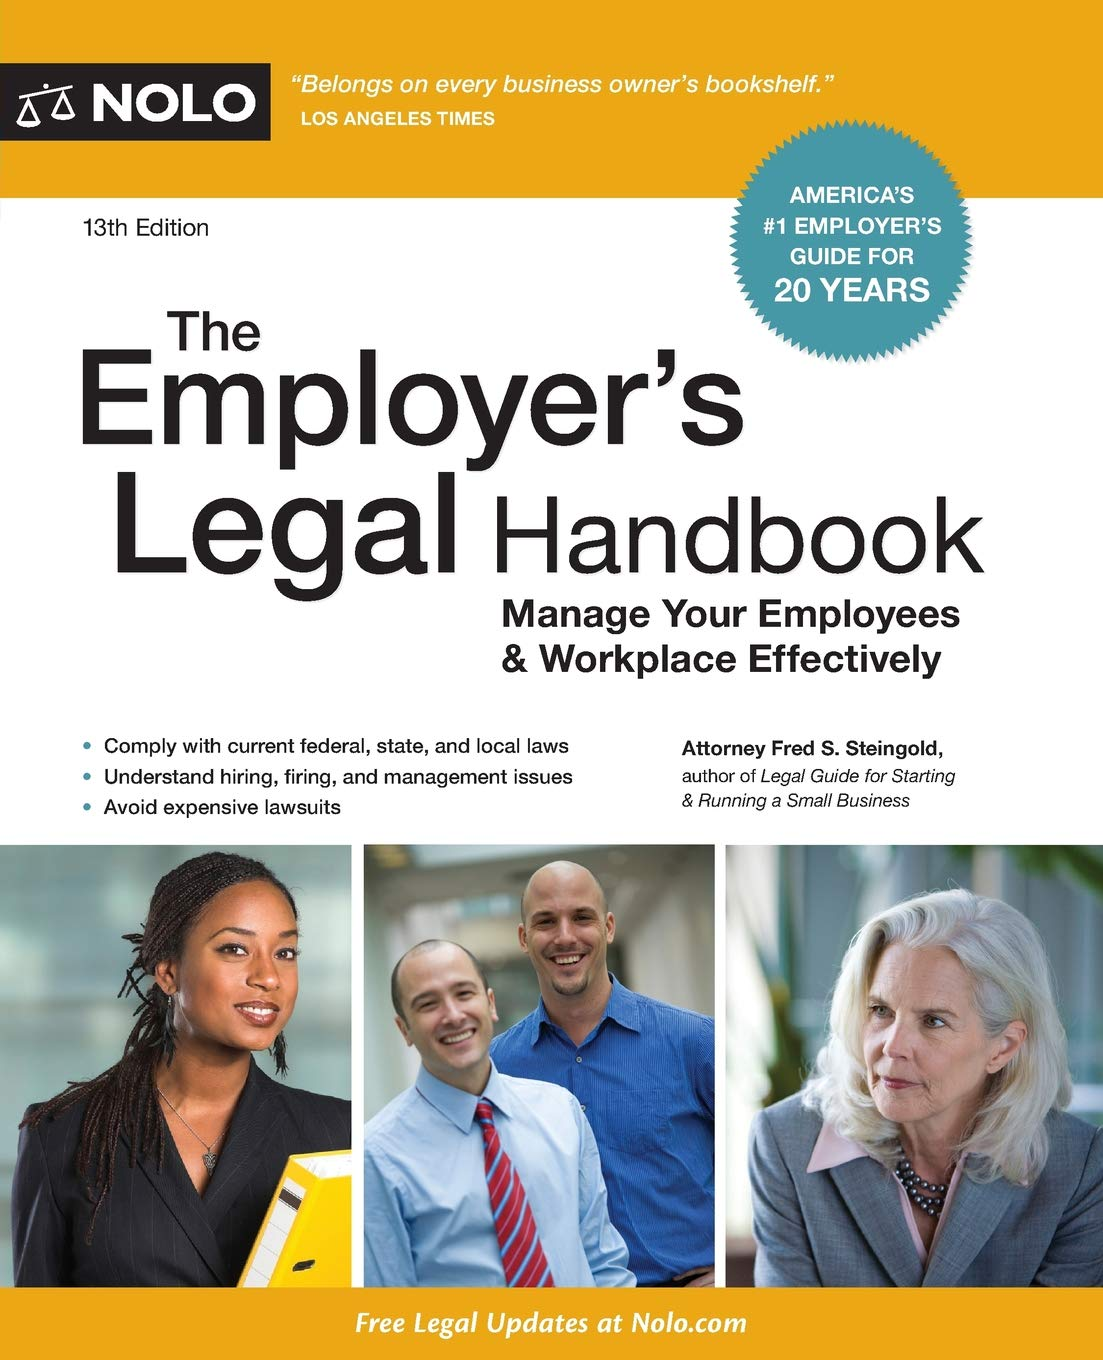 Employer's Legal Handbook, The: How to Manage Your Employees & Workplace by NOLO